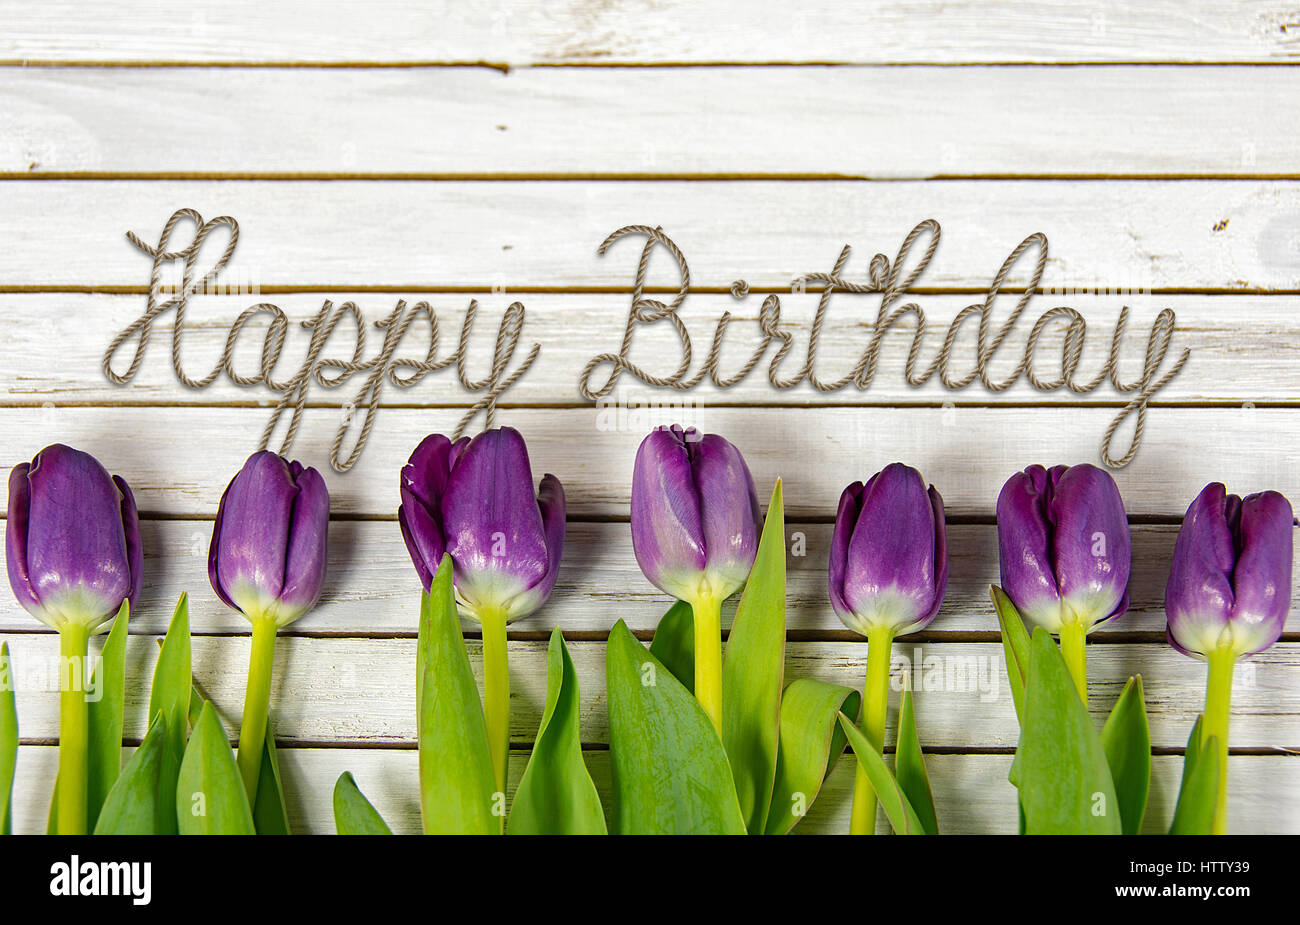 Birthday message stock photos birthday message stock images page happy birthday message in rope design with purple tulips on whitewashed wood stock image izmirmasajfo